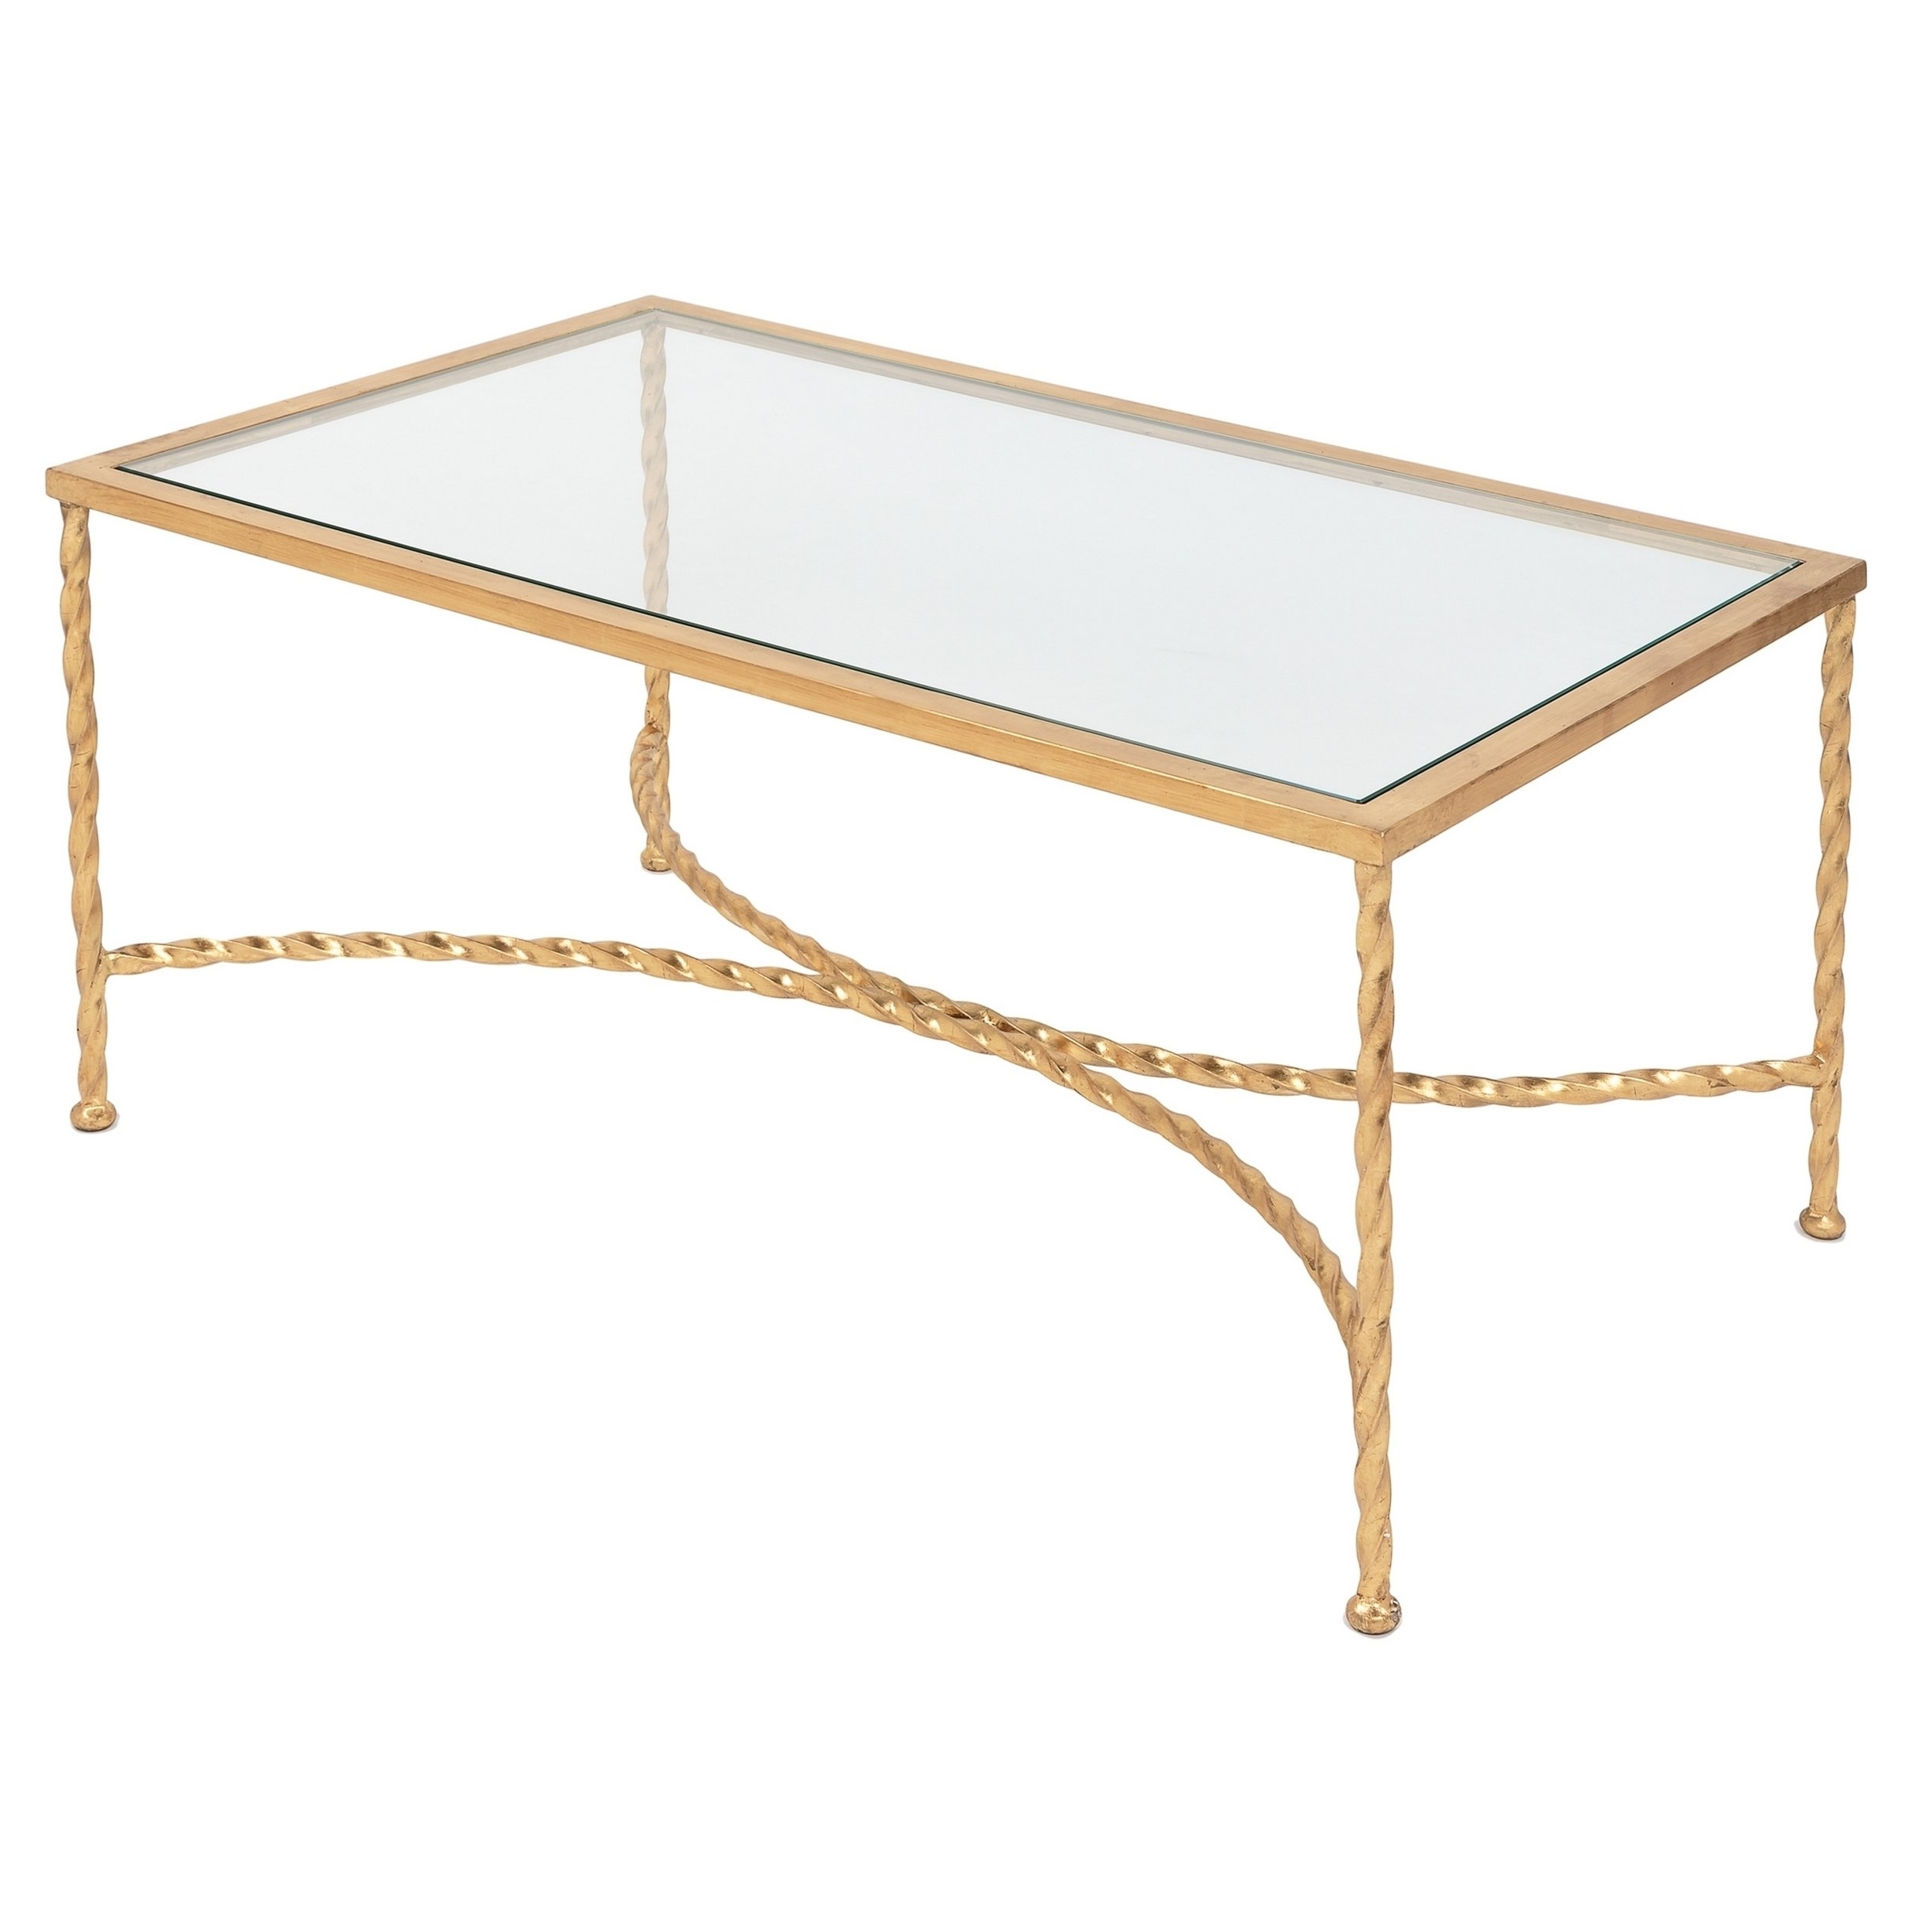 Shop Safavieh Couture High Line Collection Matilda Gold Leaf Coffee Pertaining To Trendy Gold Leaf Collection Coffee Tables (View 17 of 20)